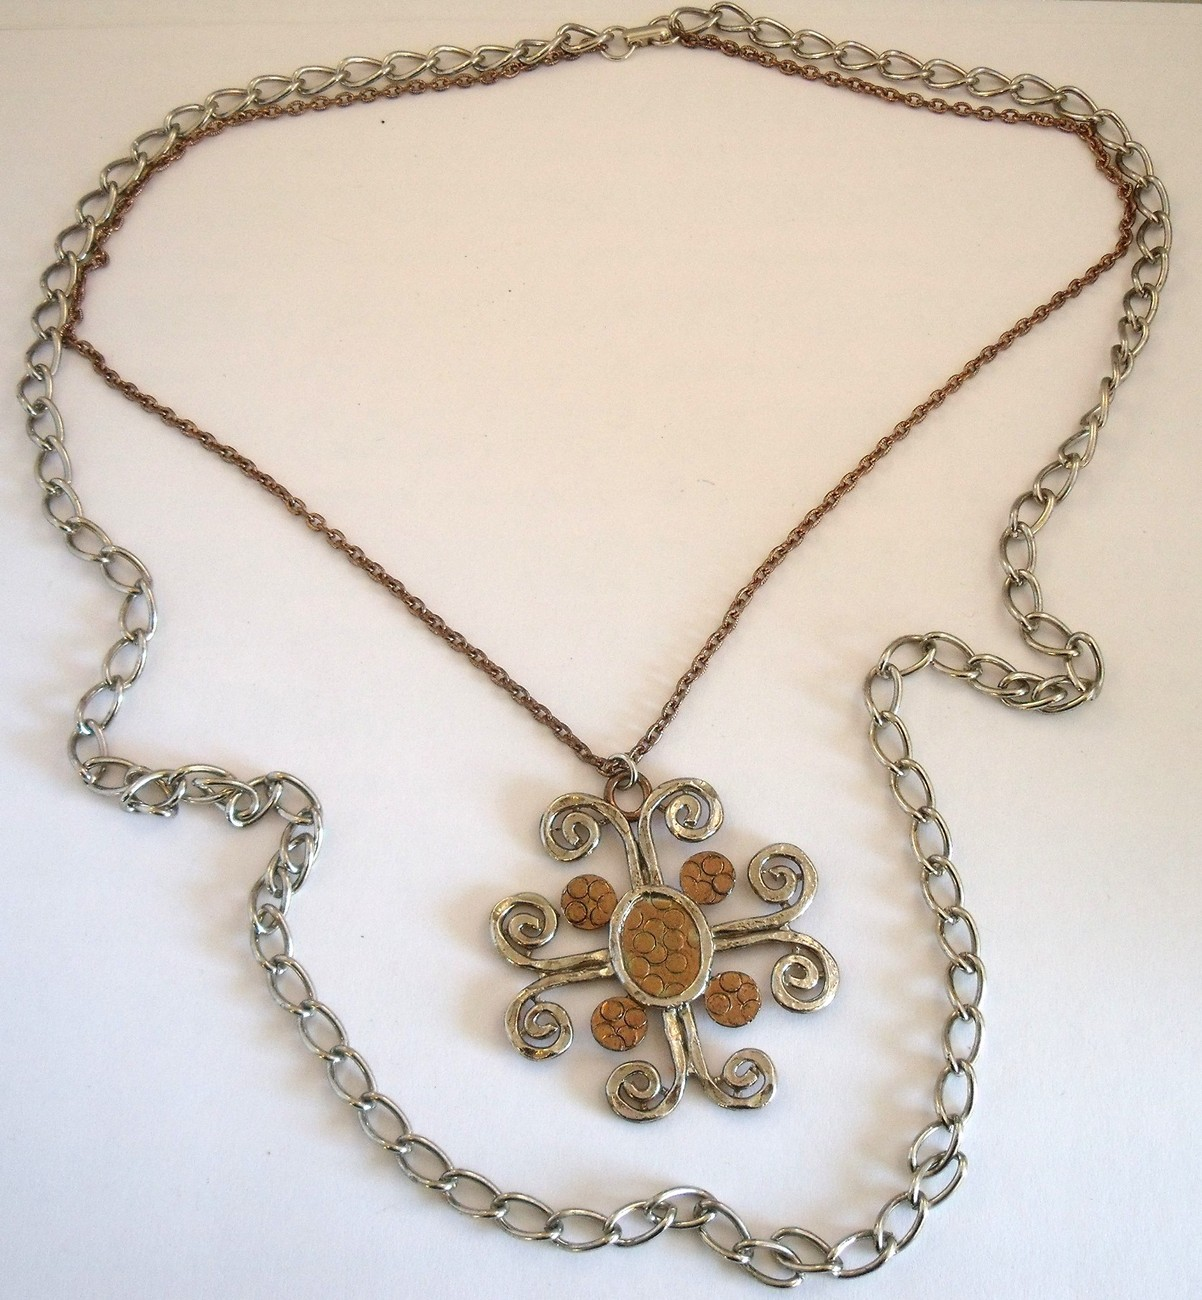 Vintage seventies modernist  copper and silver tone signed ART pendant necklace.